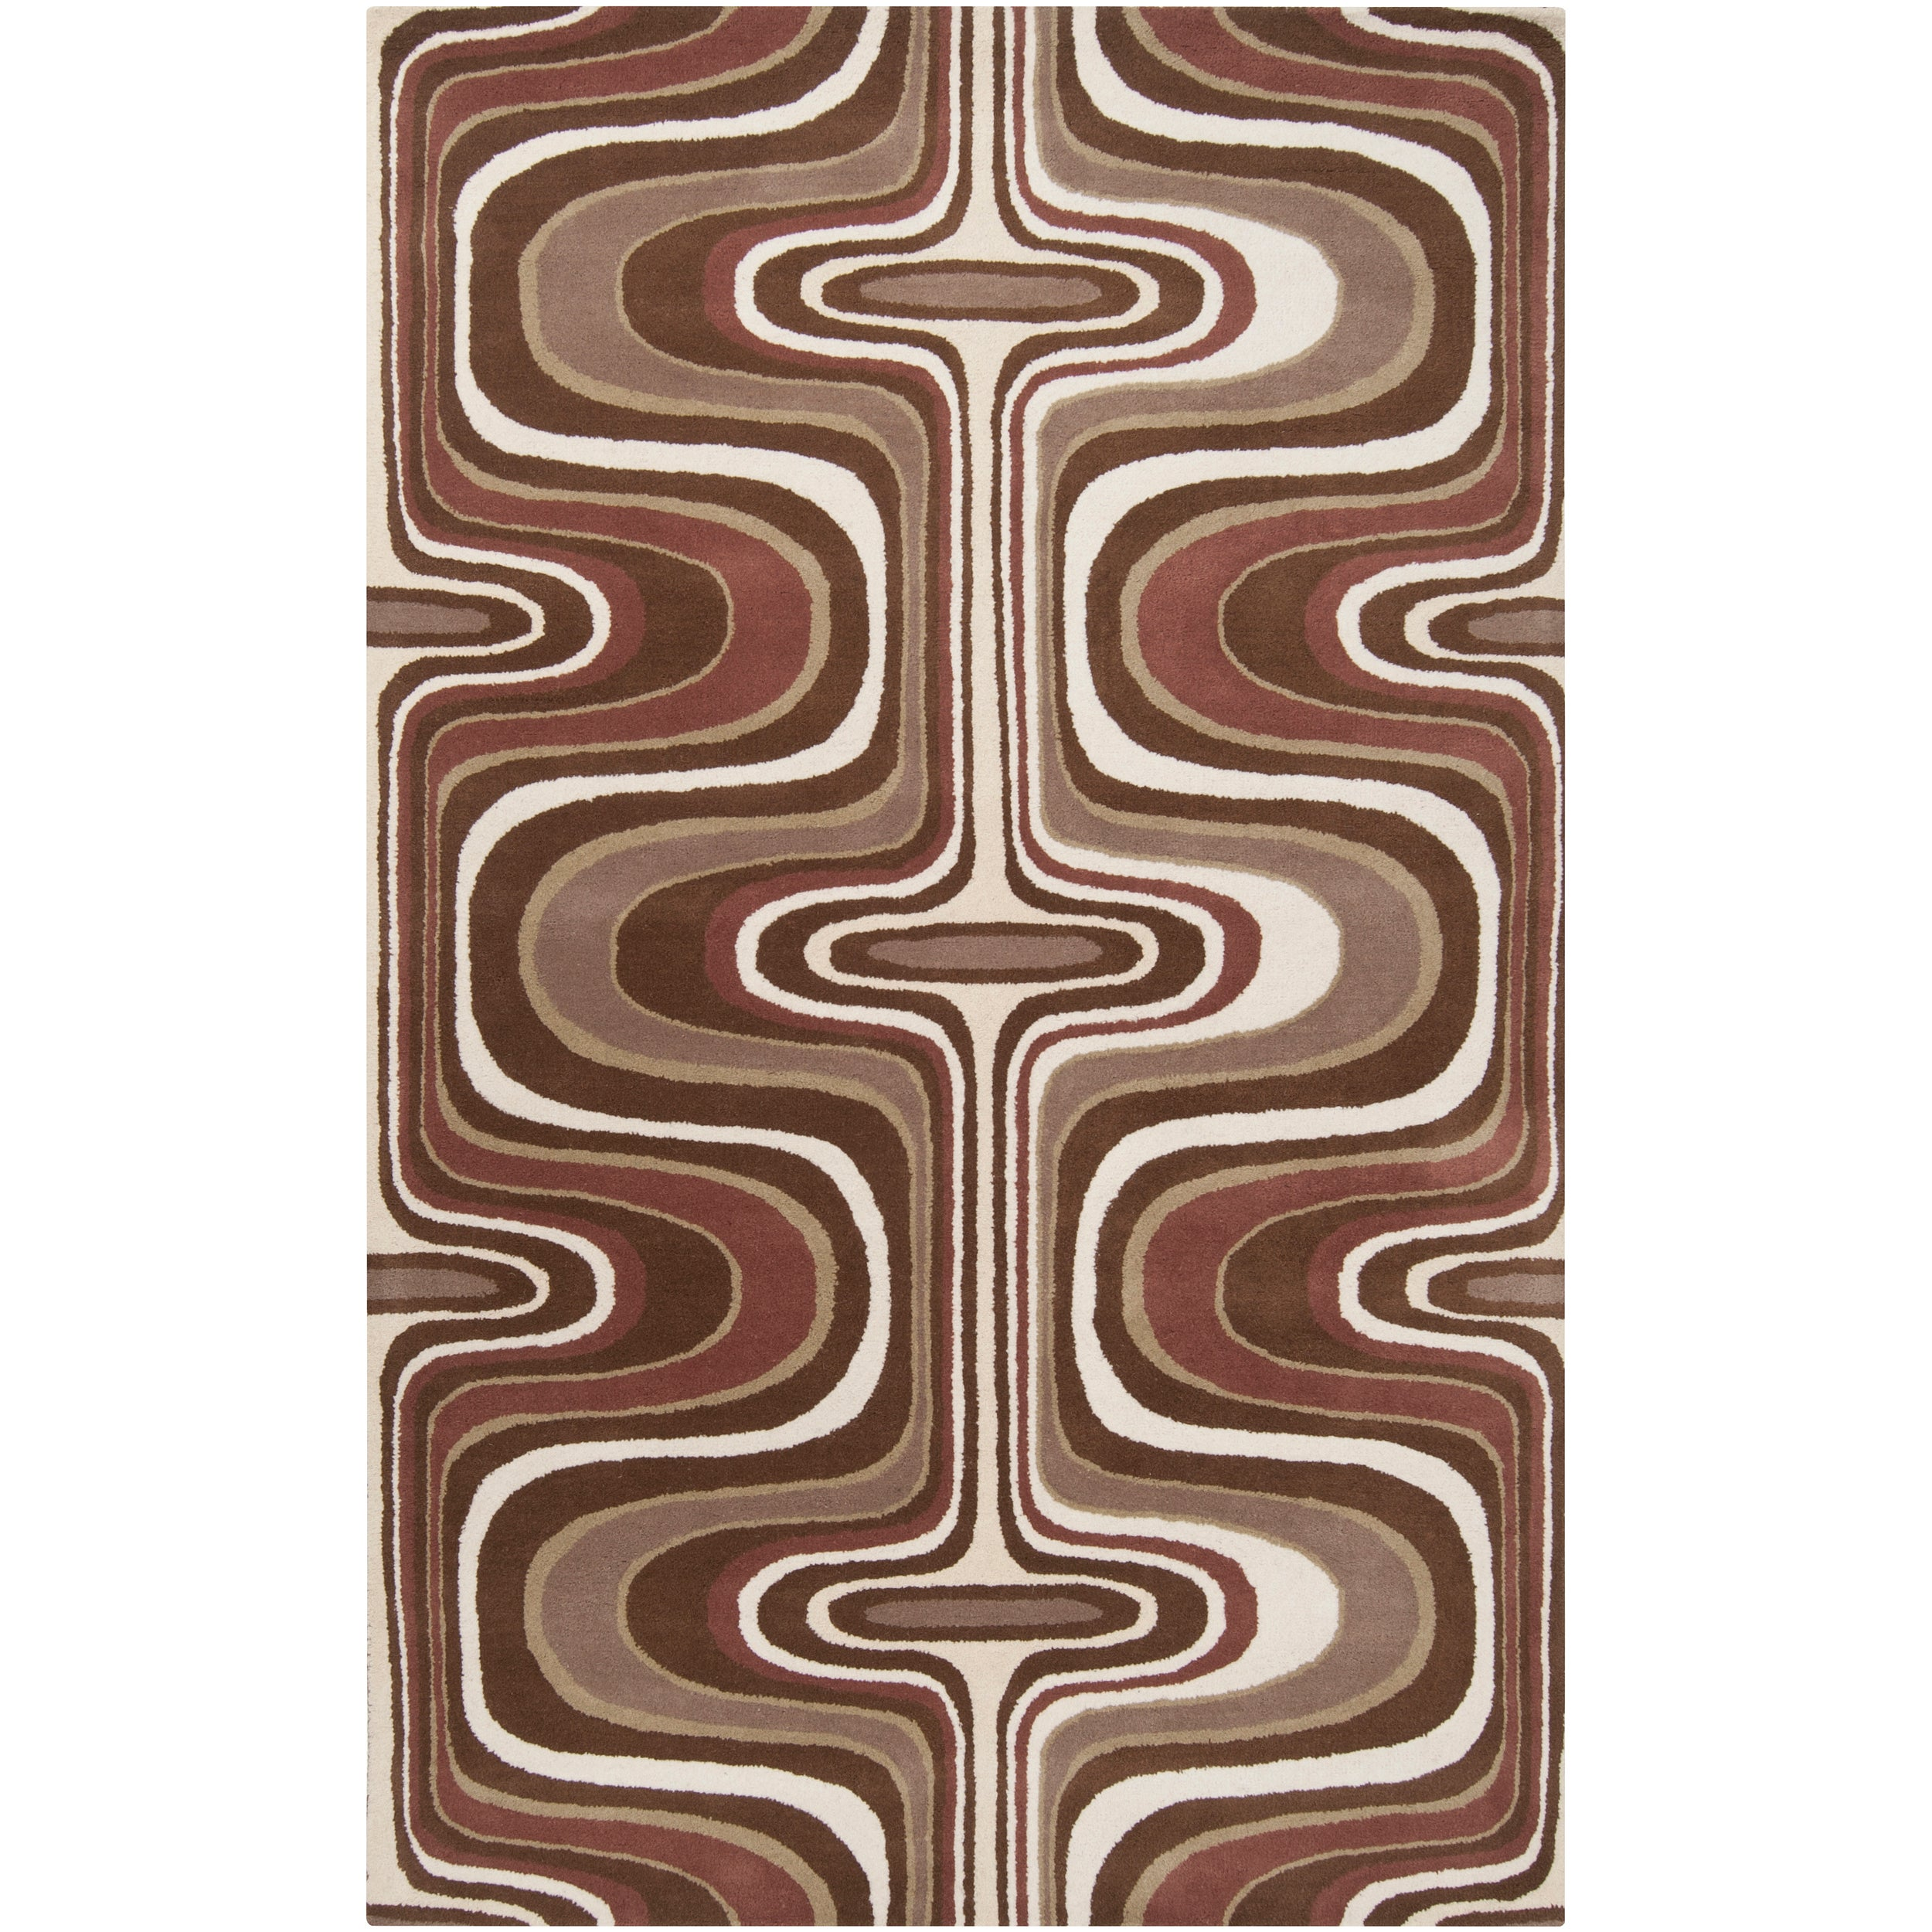 Tepper Jackson Hand-tufted Contemporary Brown Colored Swirl Dreamscape Wool Abstract Rug (8' x 11')